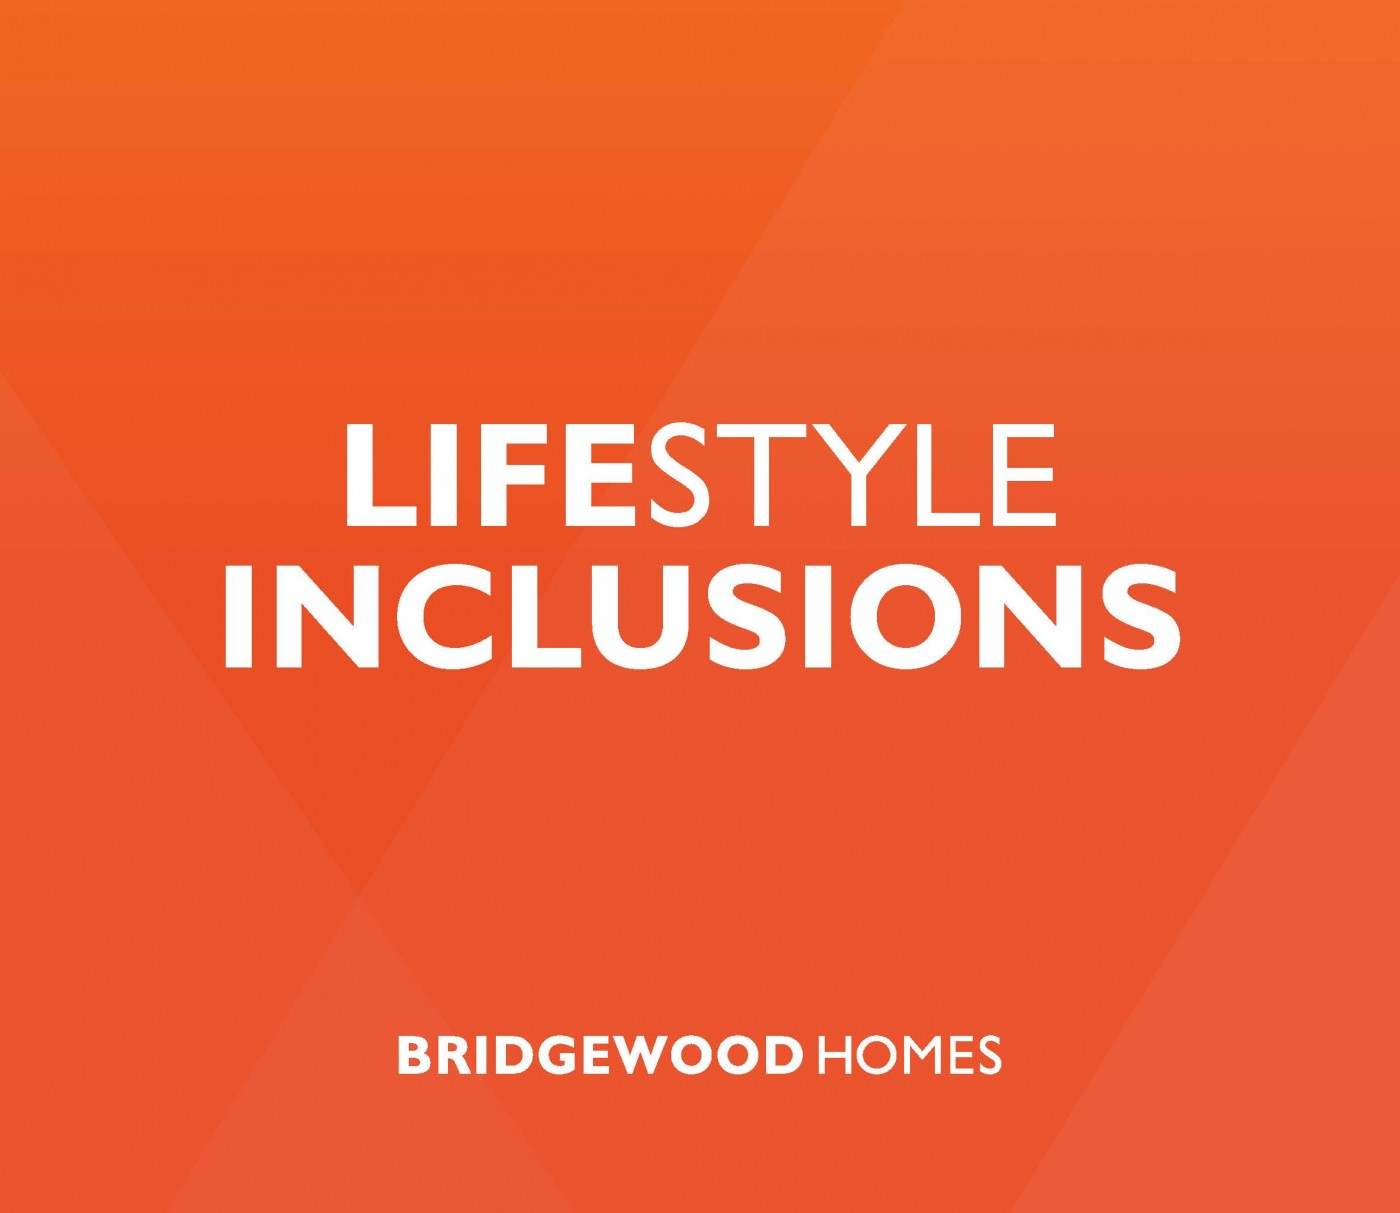 Lifestyle Inclusions